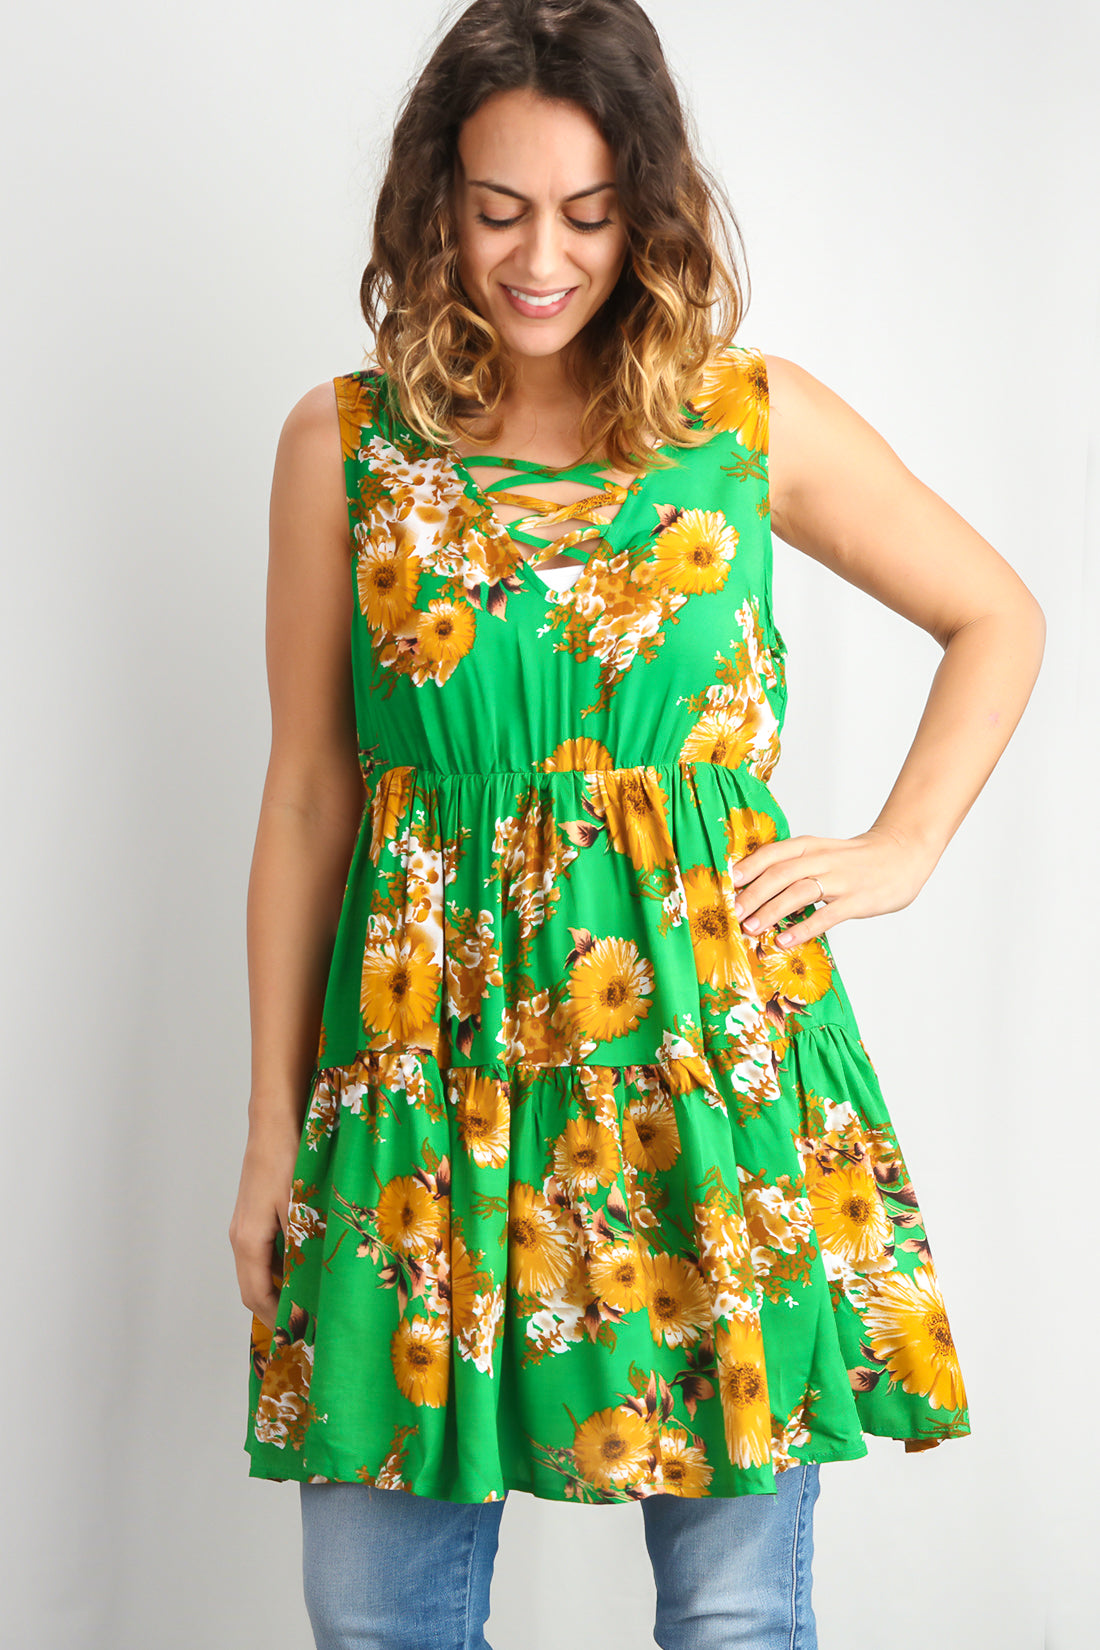 Green Floral Printed Flare Dress